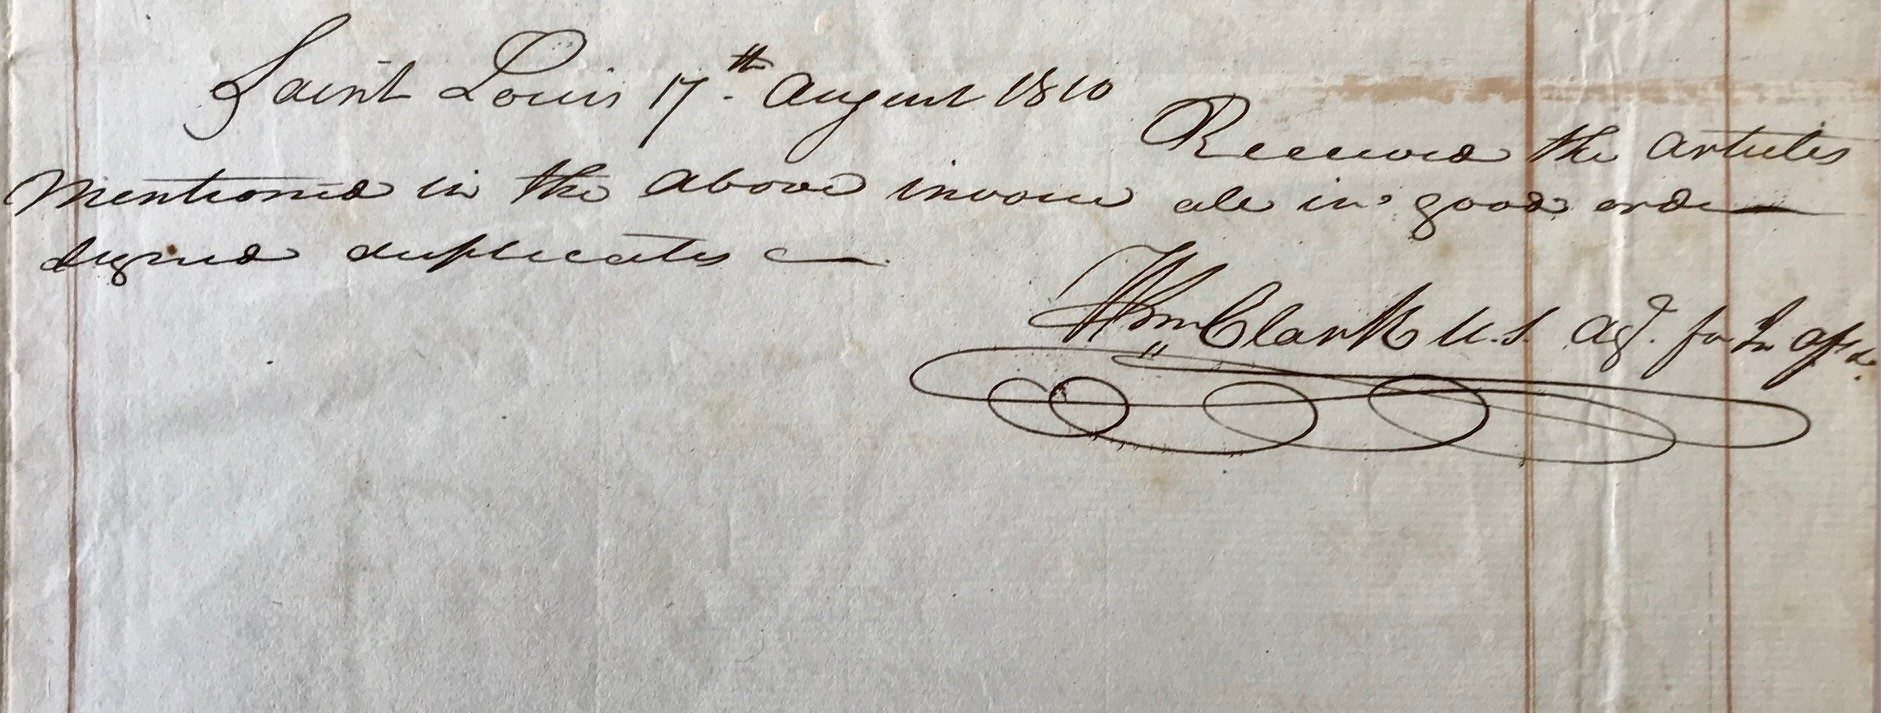 Shortly after the Lewis & Clark Expedition Ends, Clark Signs off on Articles to be Traded with American Indians